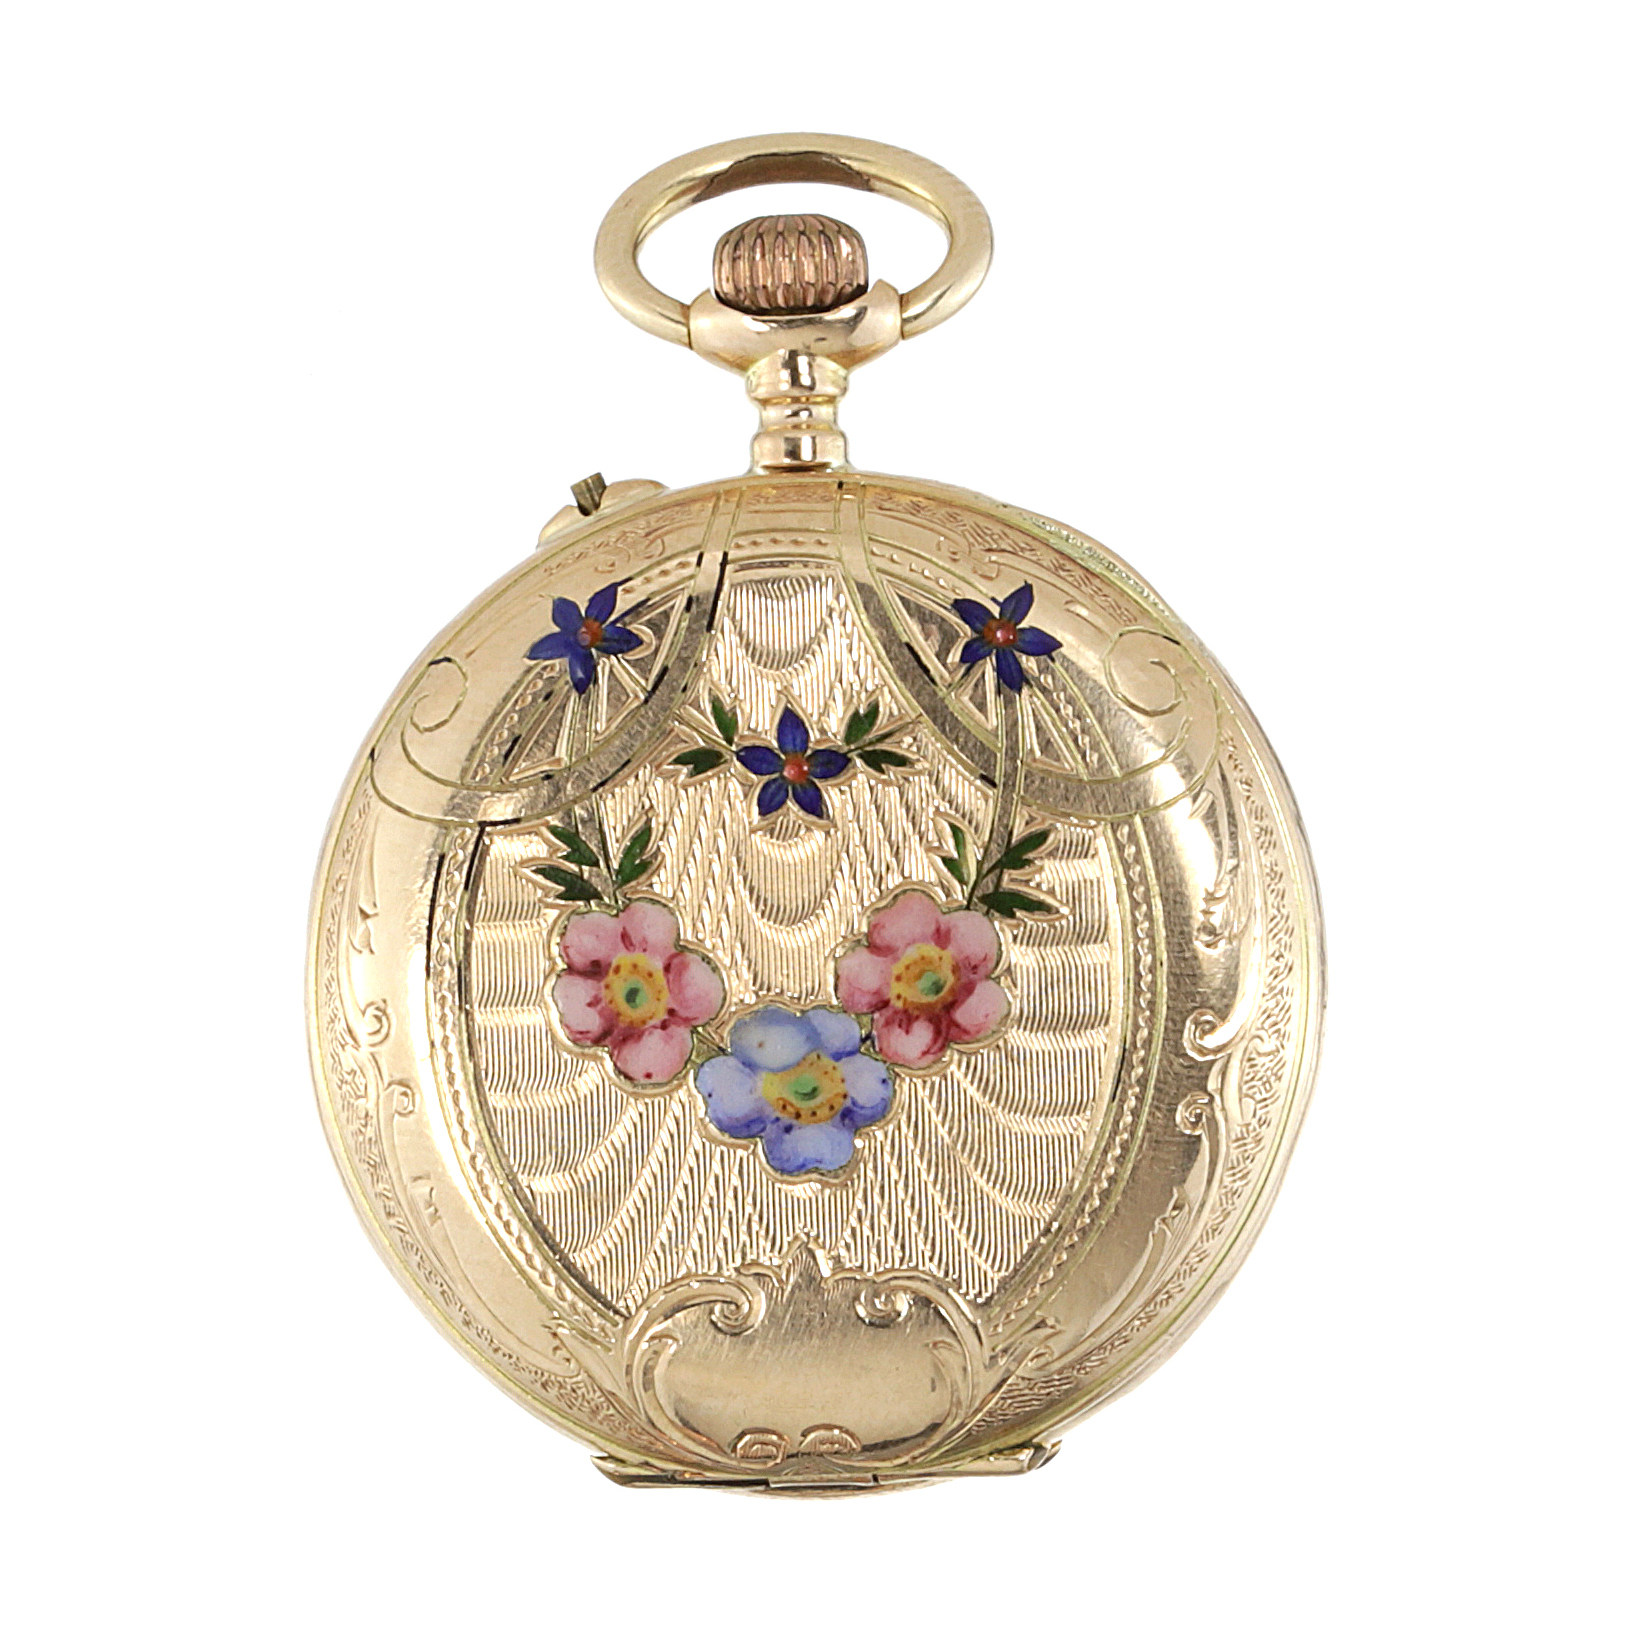 Los 458 - AN ENAMEL POCKET WATCH in high carat yellow gold, the circular case with engraved foliate